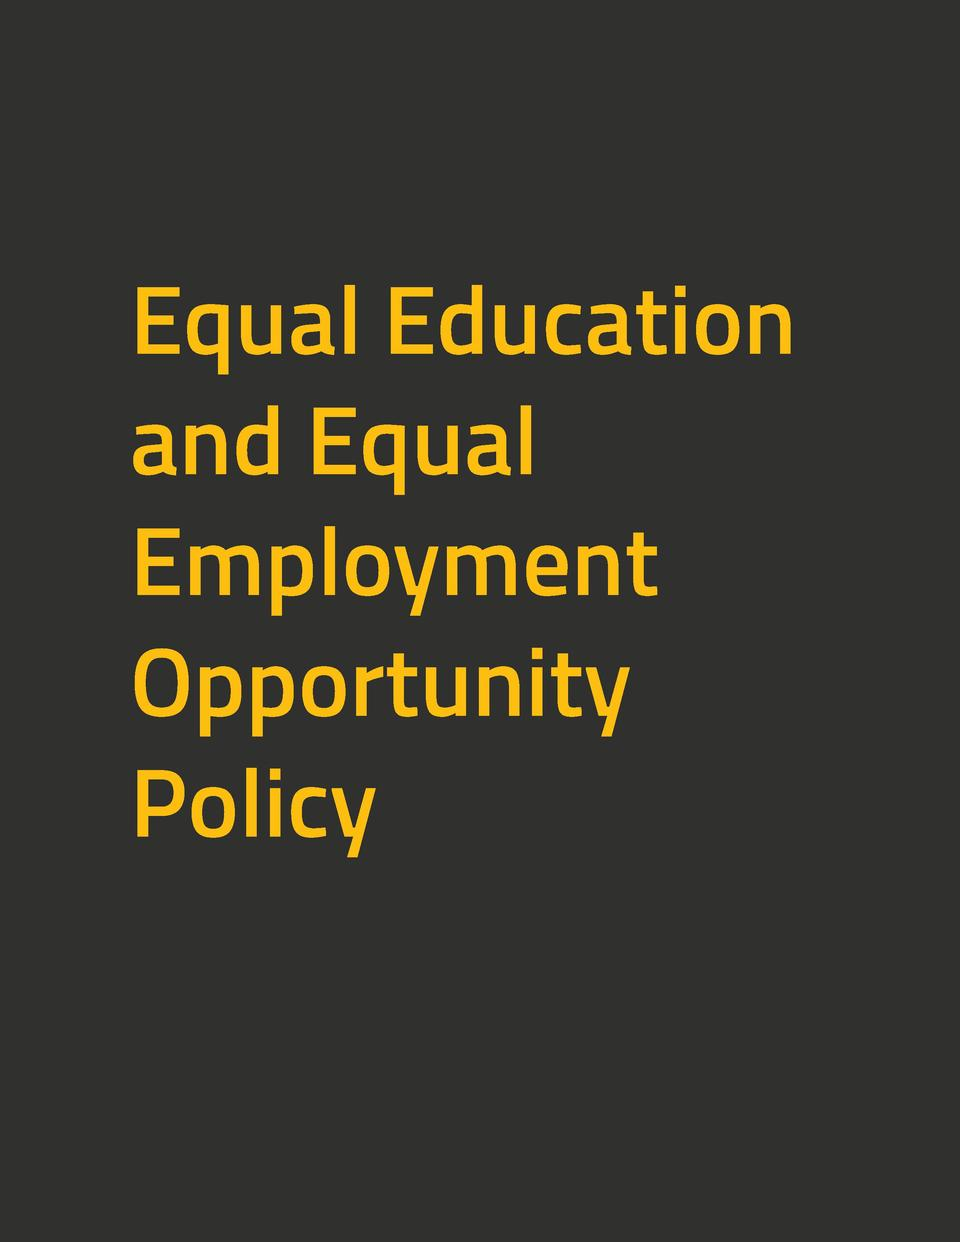 Equal Education and Equal Employment Opportunity Policy